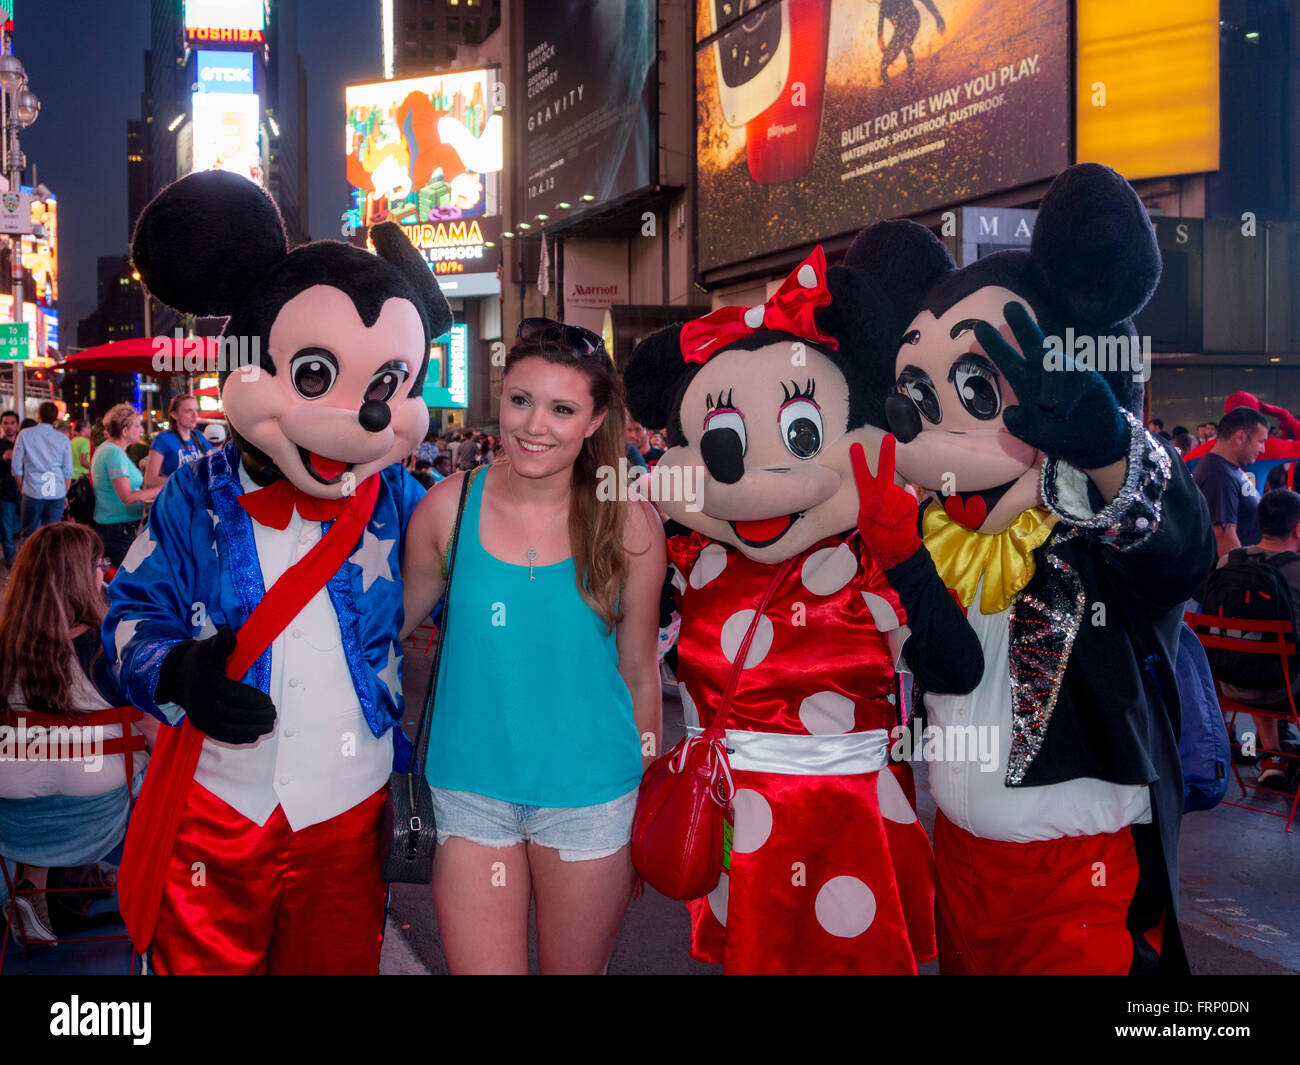 Female Ourist With Mickey And Minnie Mouse Characters Times Square At Night New York